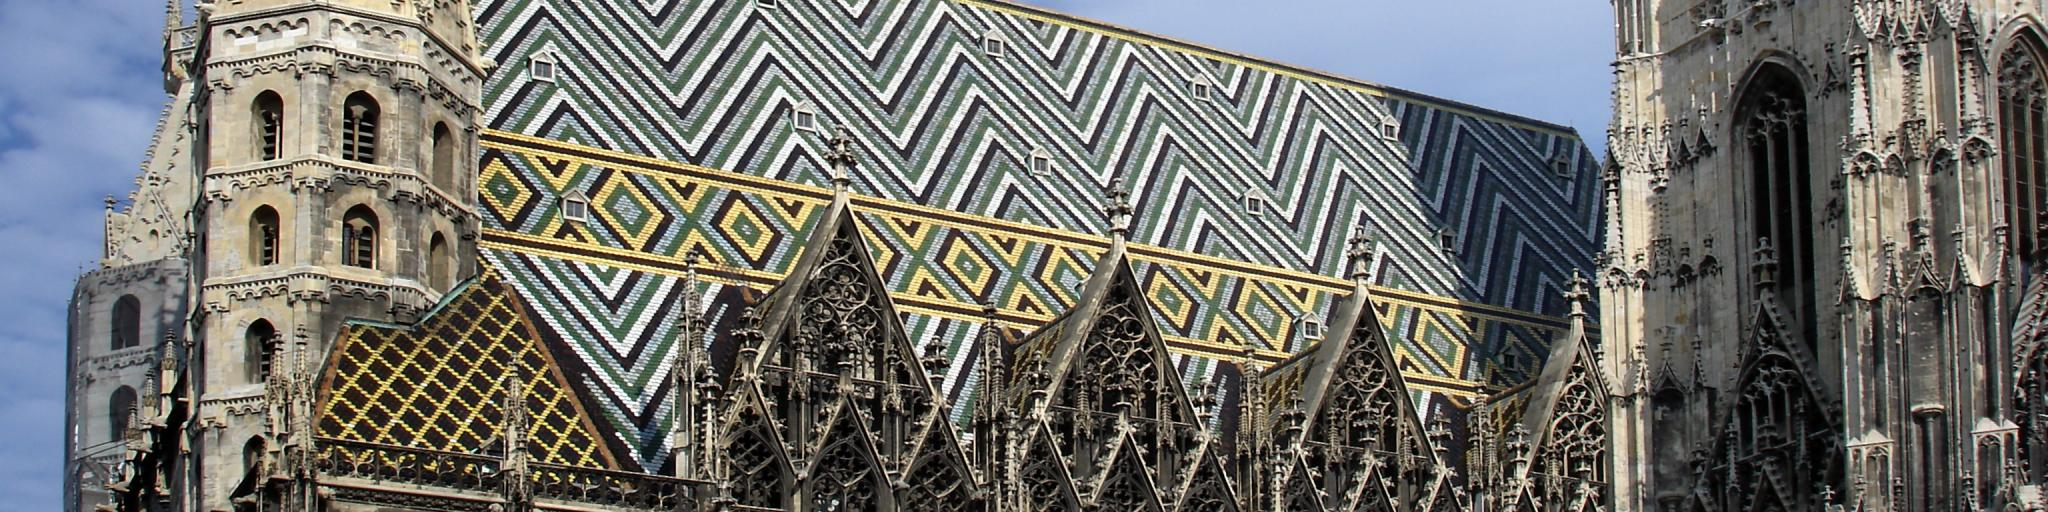 The intricate black, green, blue and yellow tiled roof of St Stephen's Cathedral in Vienna